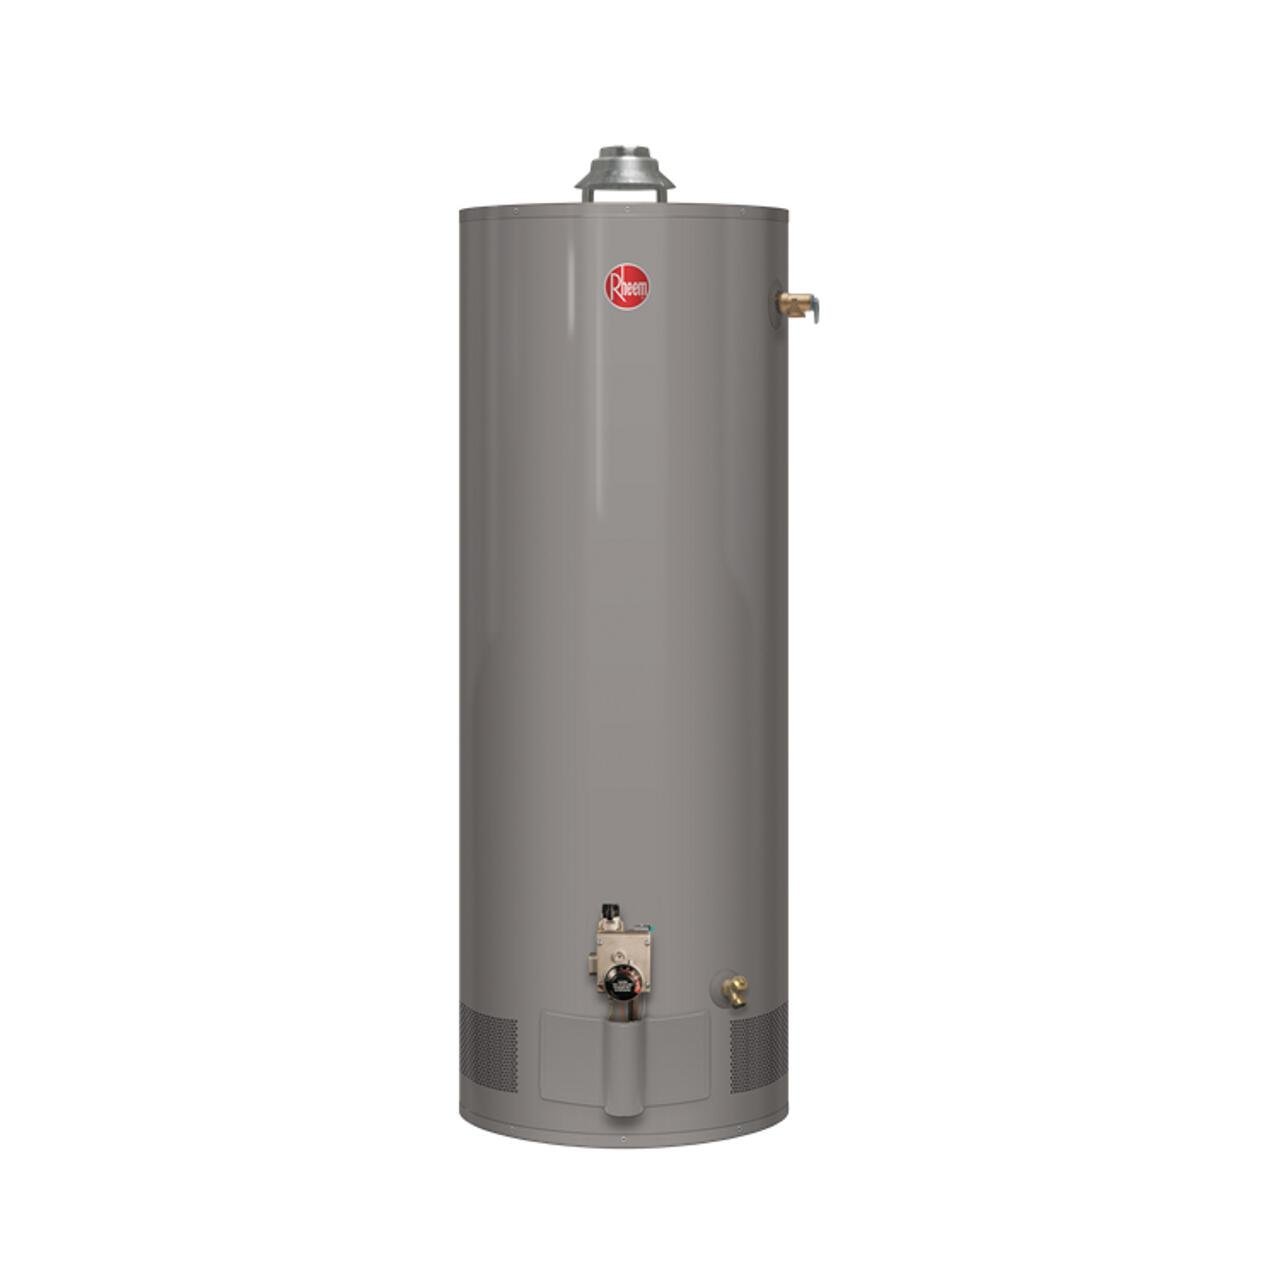 Top 5 Best Tankless Natural Gas Water Heaters 2016 2017 On